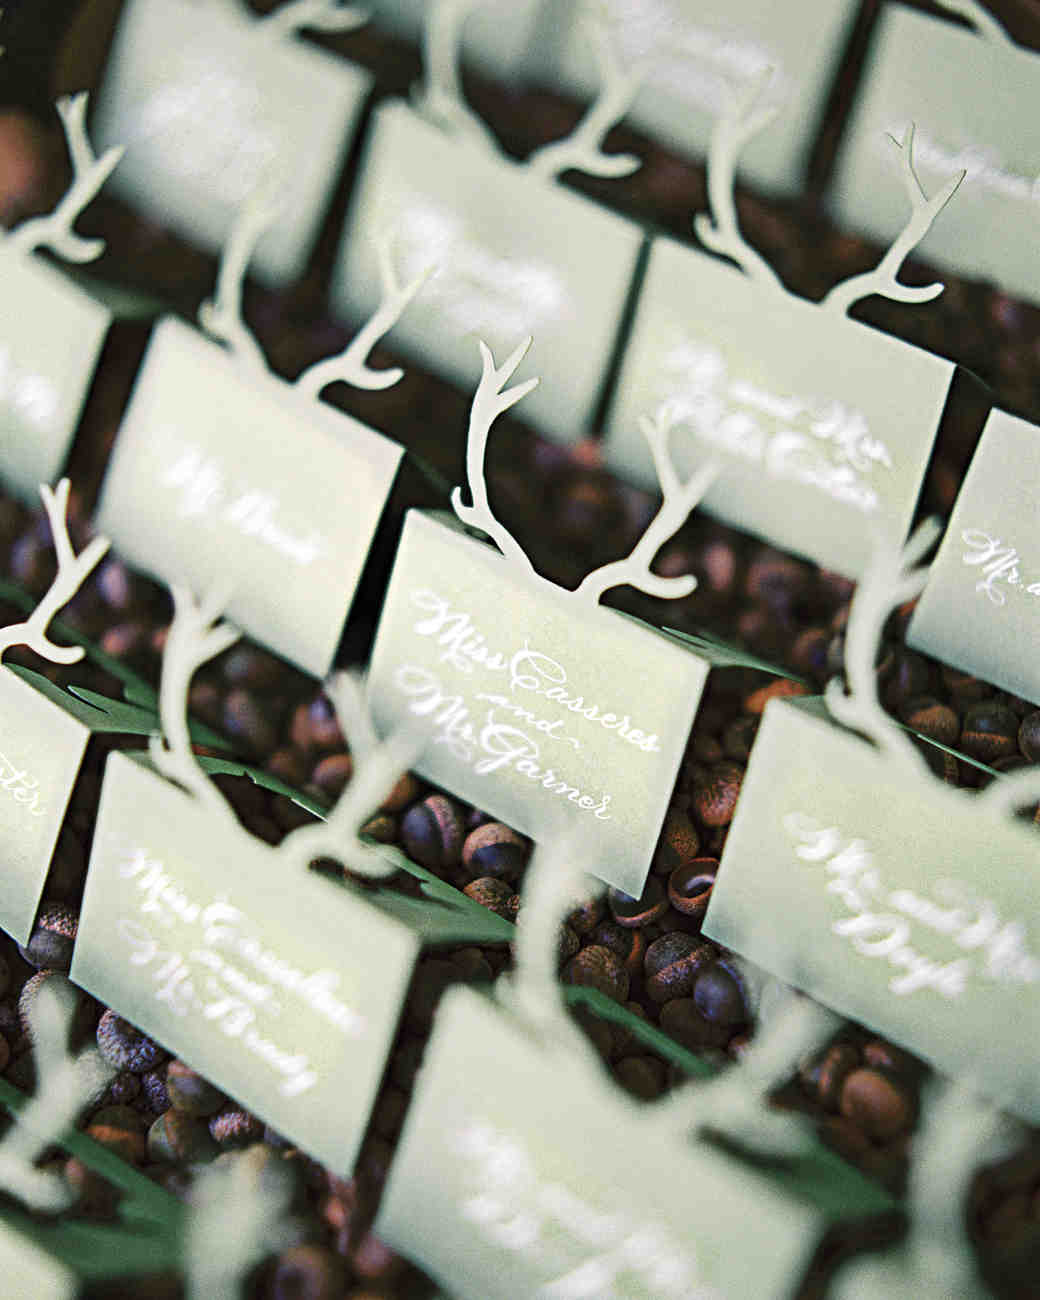 place-cards-008856-r1-005-copy-mwds110846.jpg